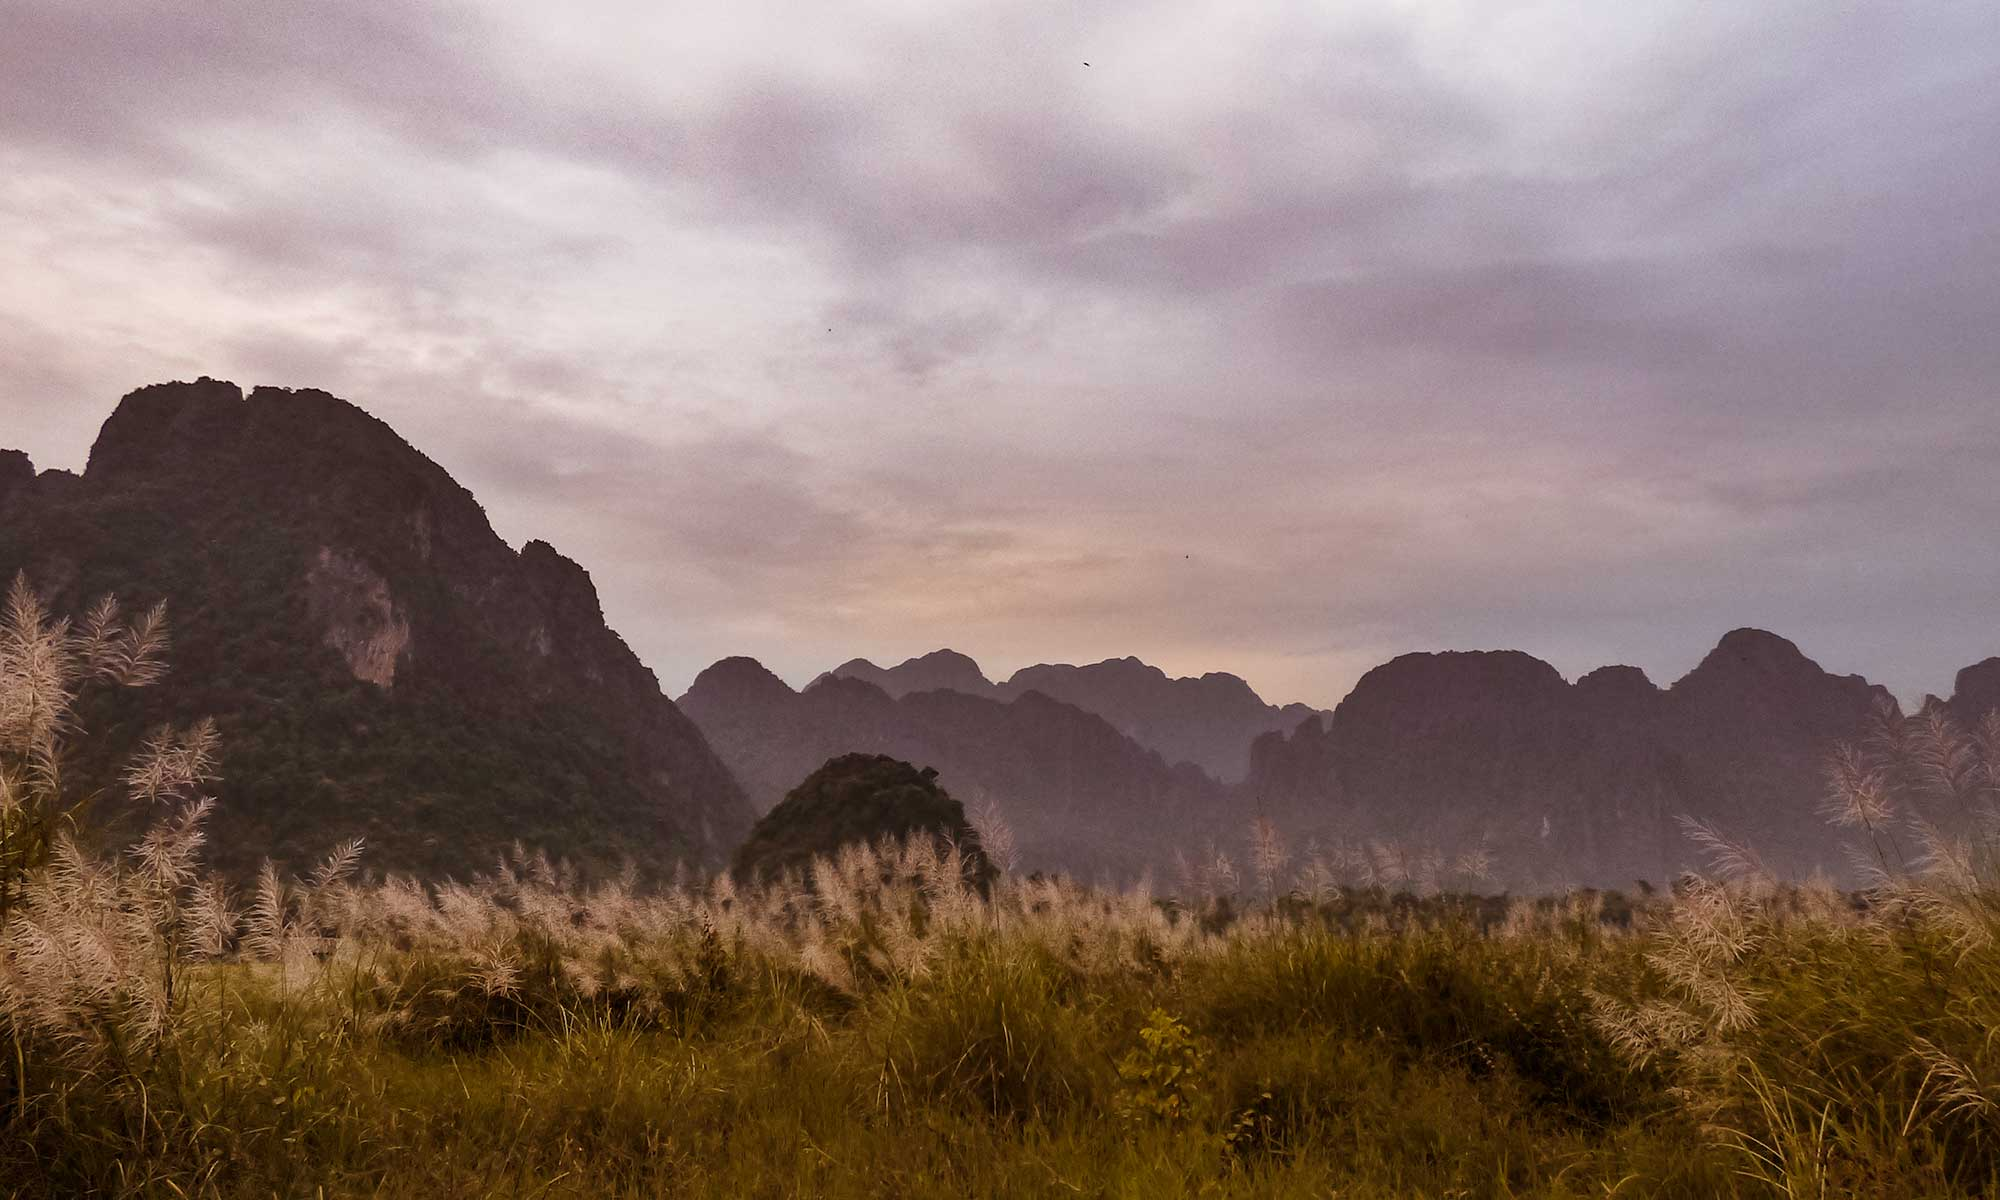 Sunset veins over Vang Vieng limestone cliffs, one of the best places to visit in Laos to admire the sunset